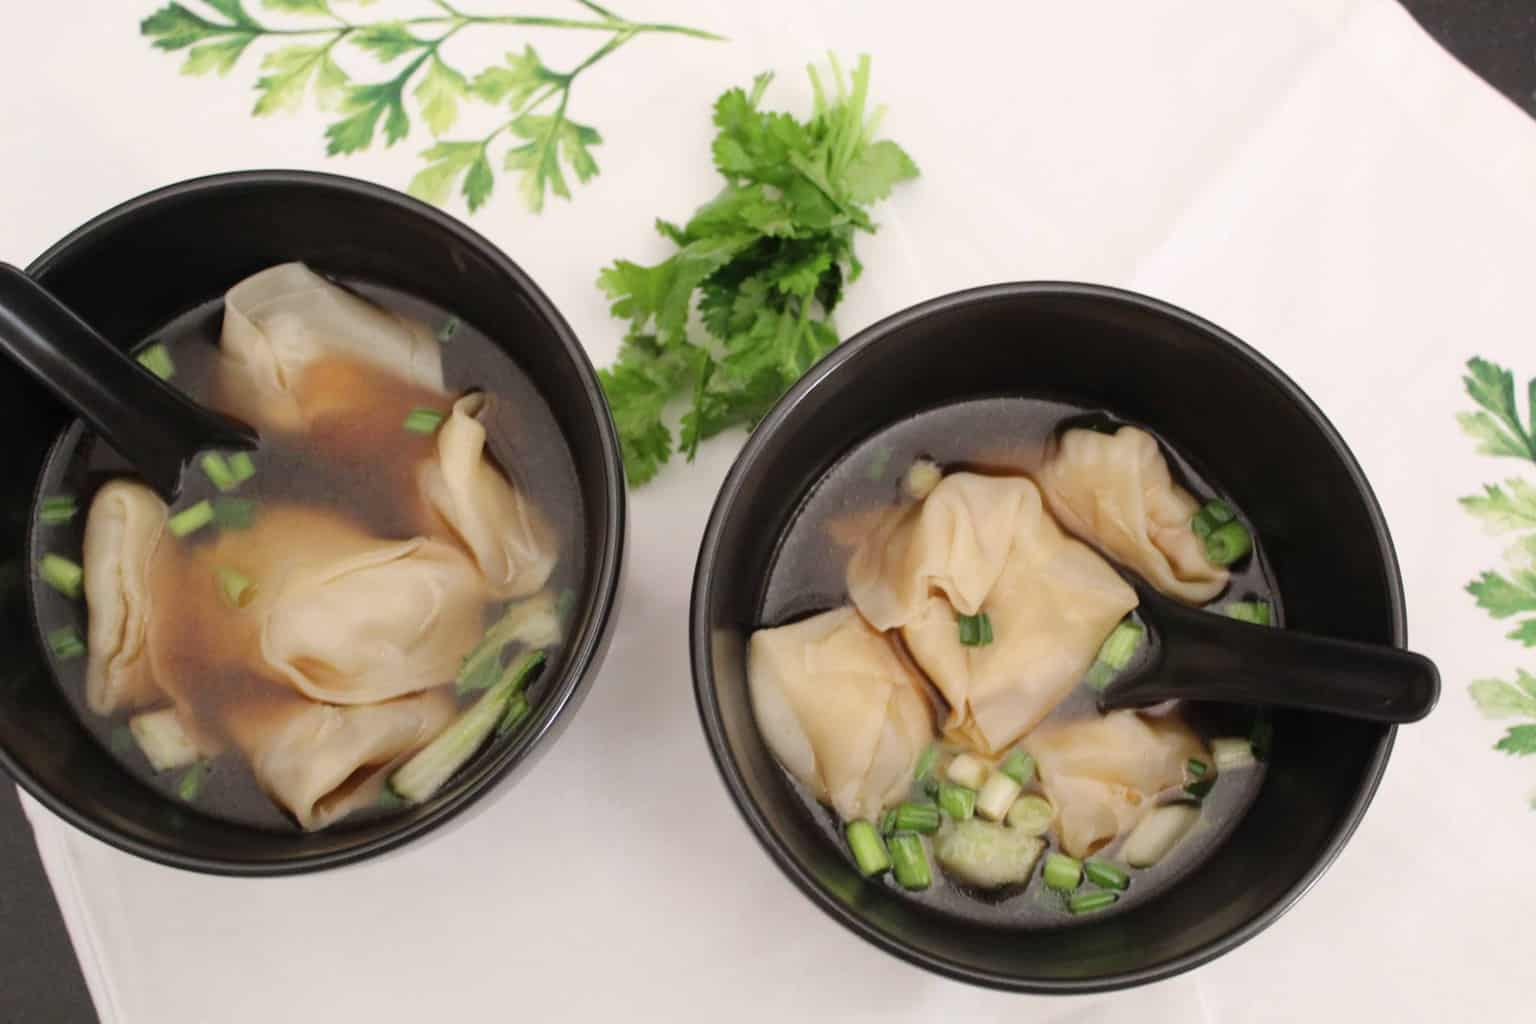 Two Bowls of Won Ton Soup on white tablecloth.